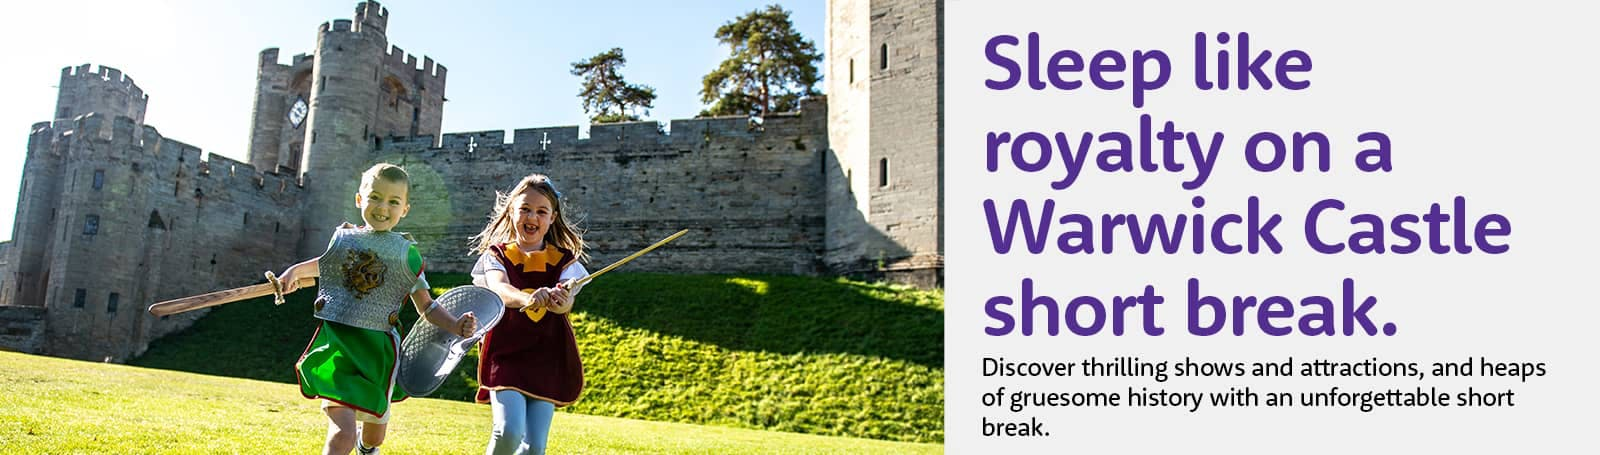 Warwick Castle with a Hotel